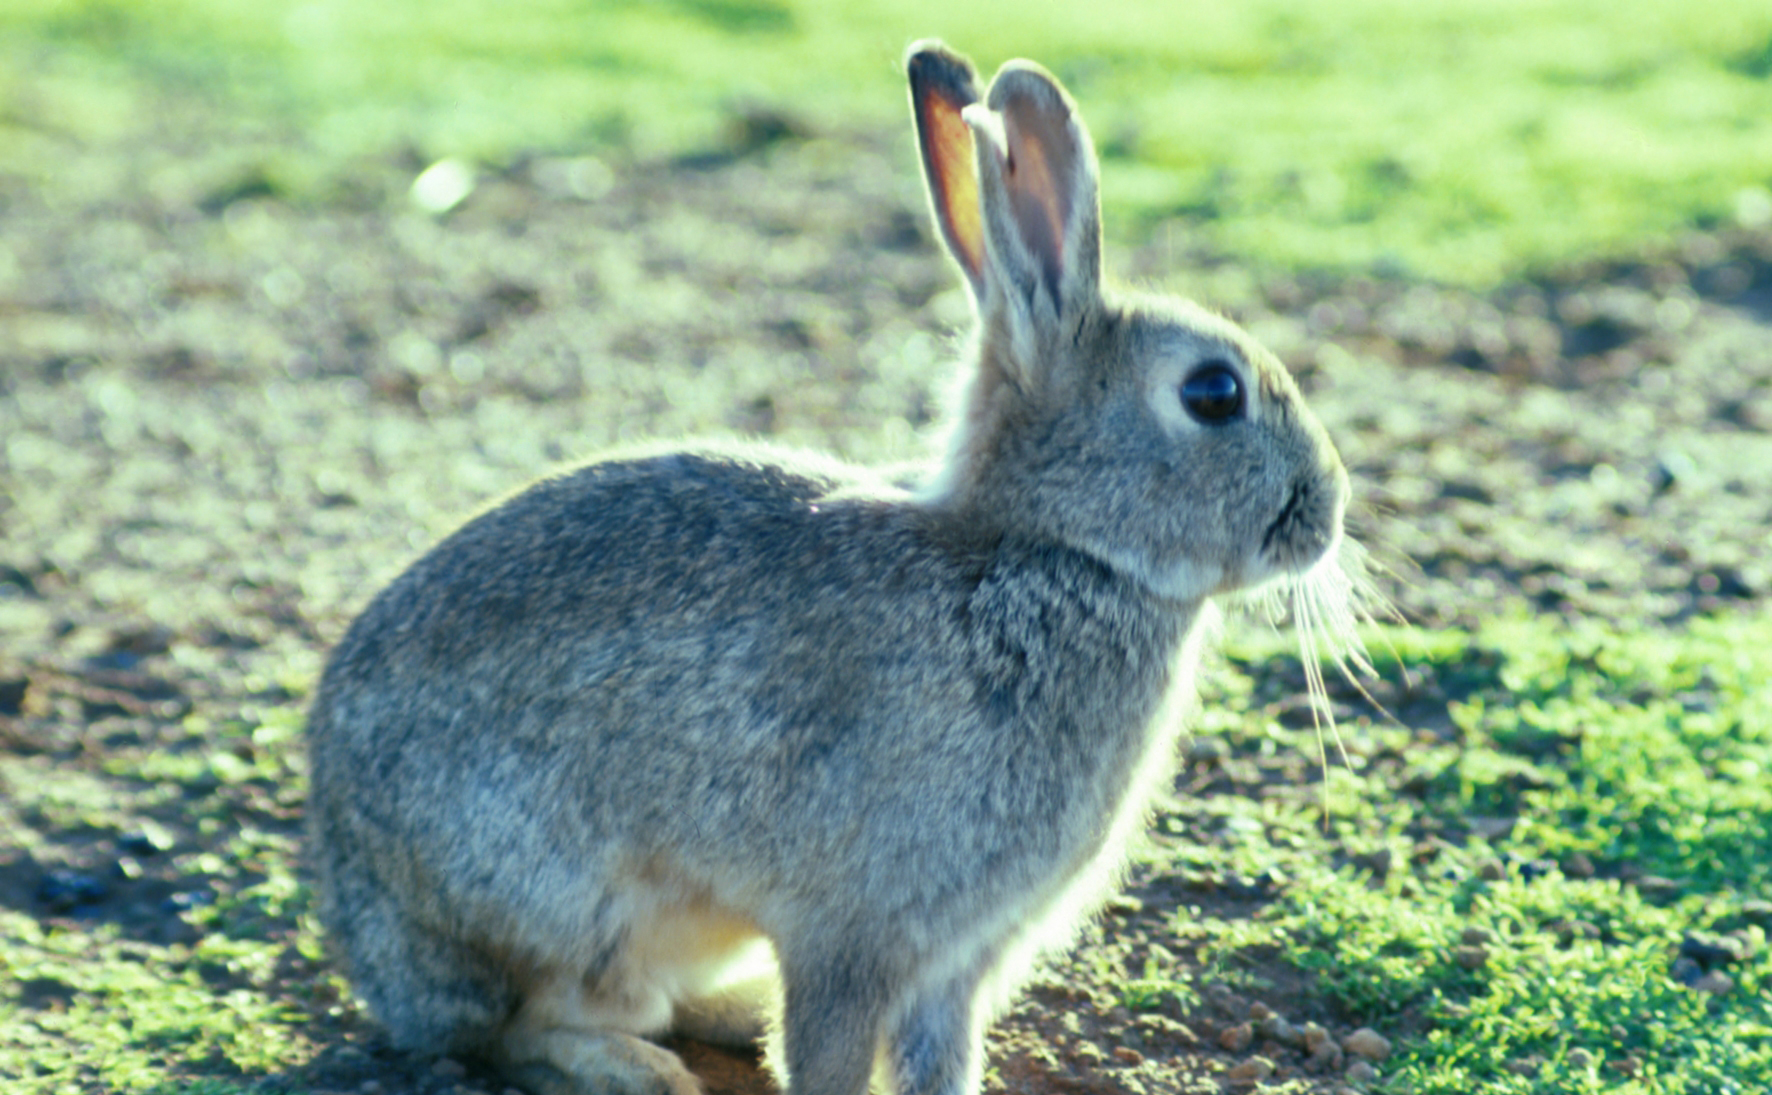 a fluffy grey rabbit sitting on a grassy patch